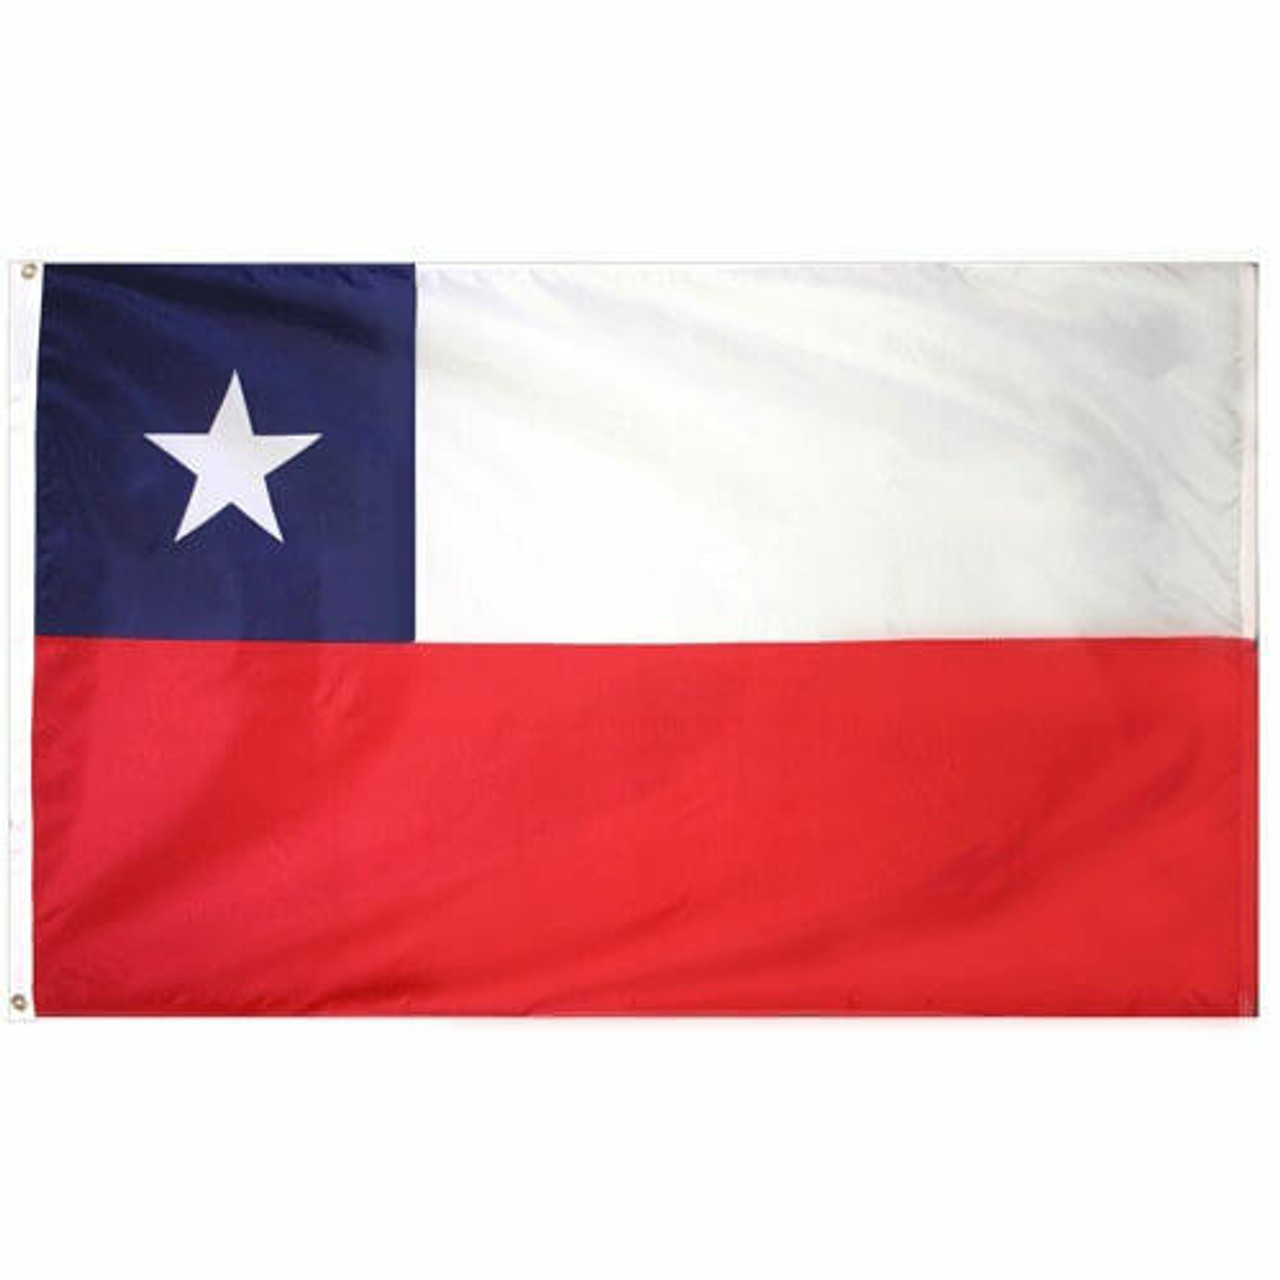 The Chile Flag has two horizontal bands of white and red, with a blue square the same height as the white band in the canton, with a white five point star